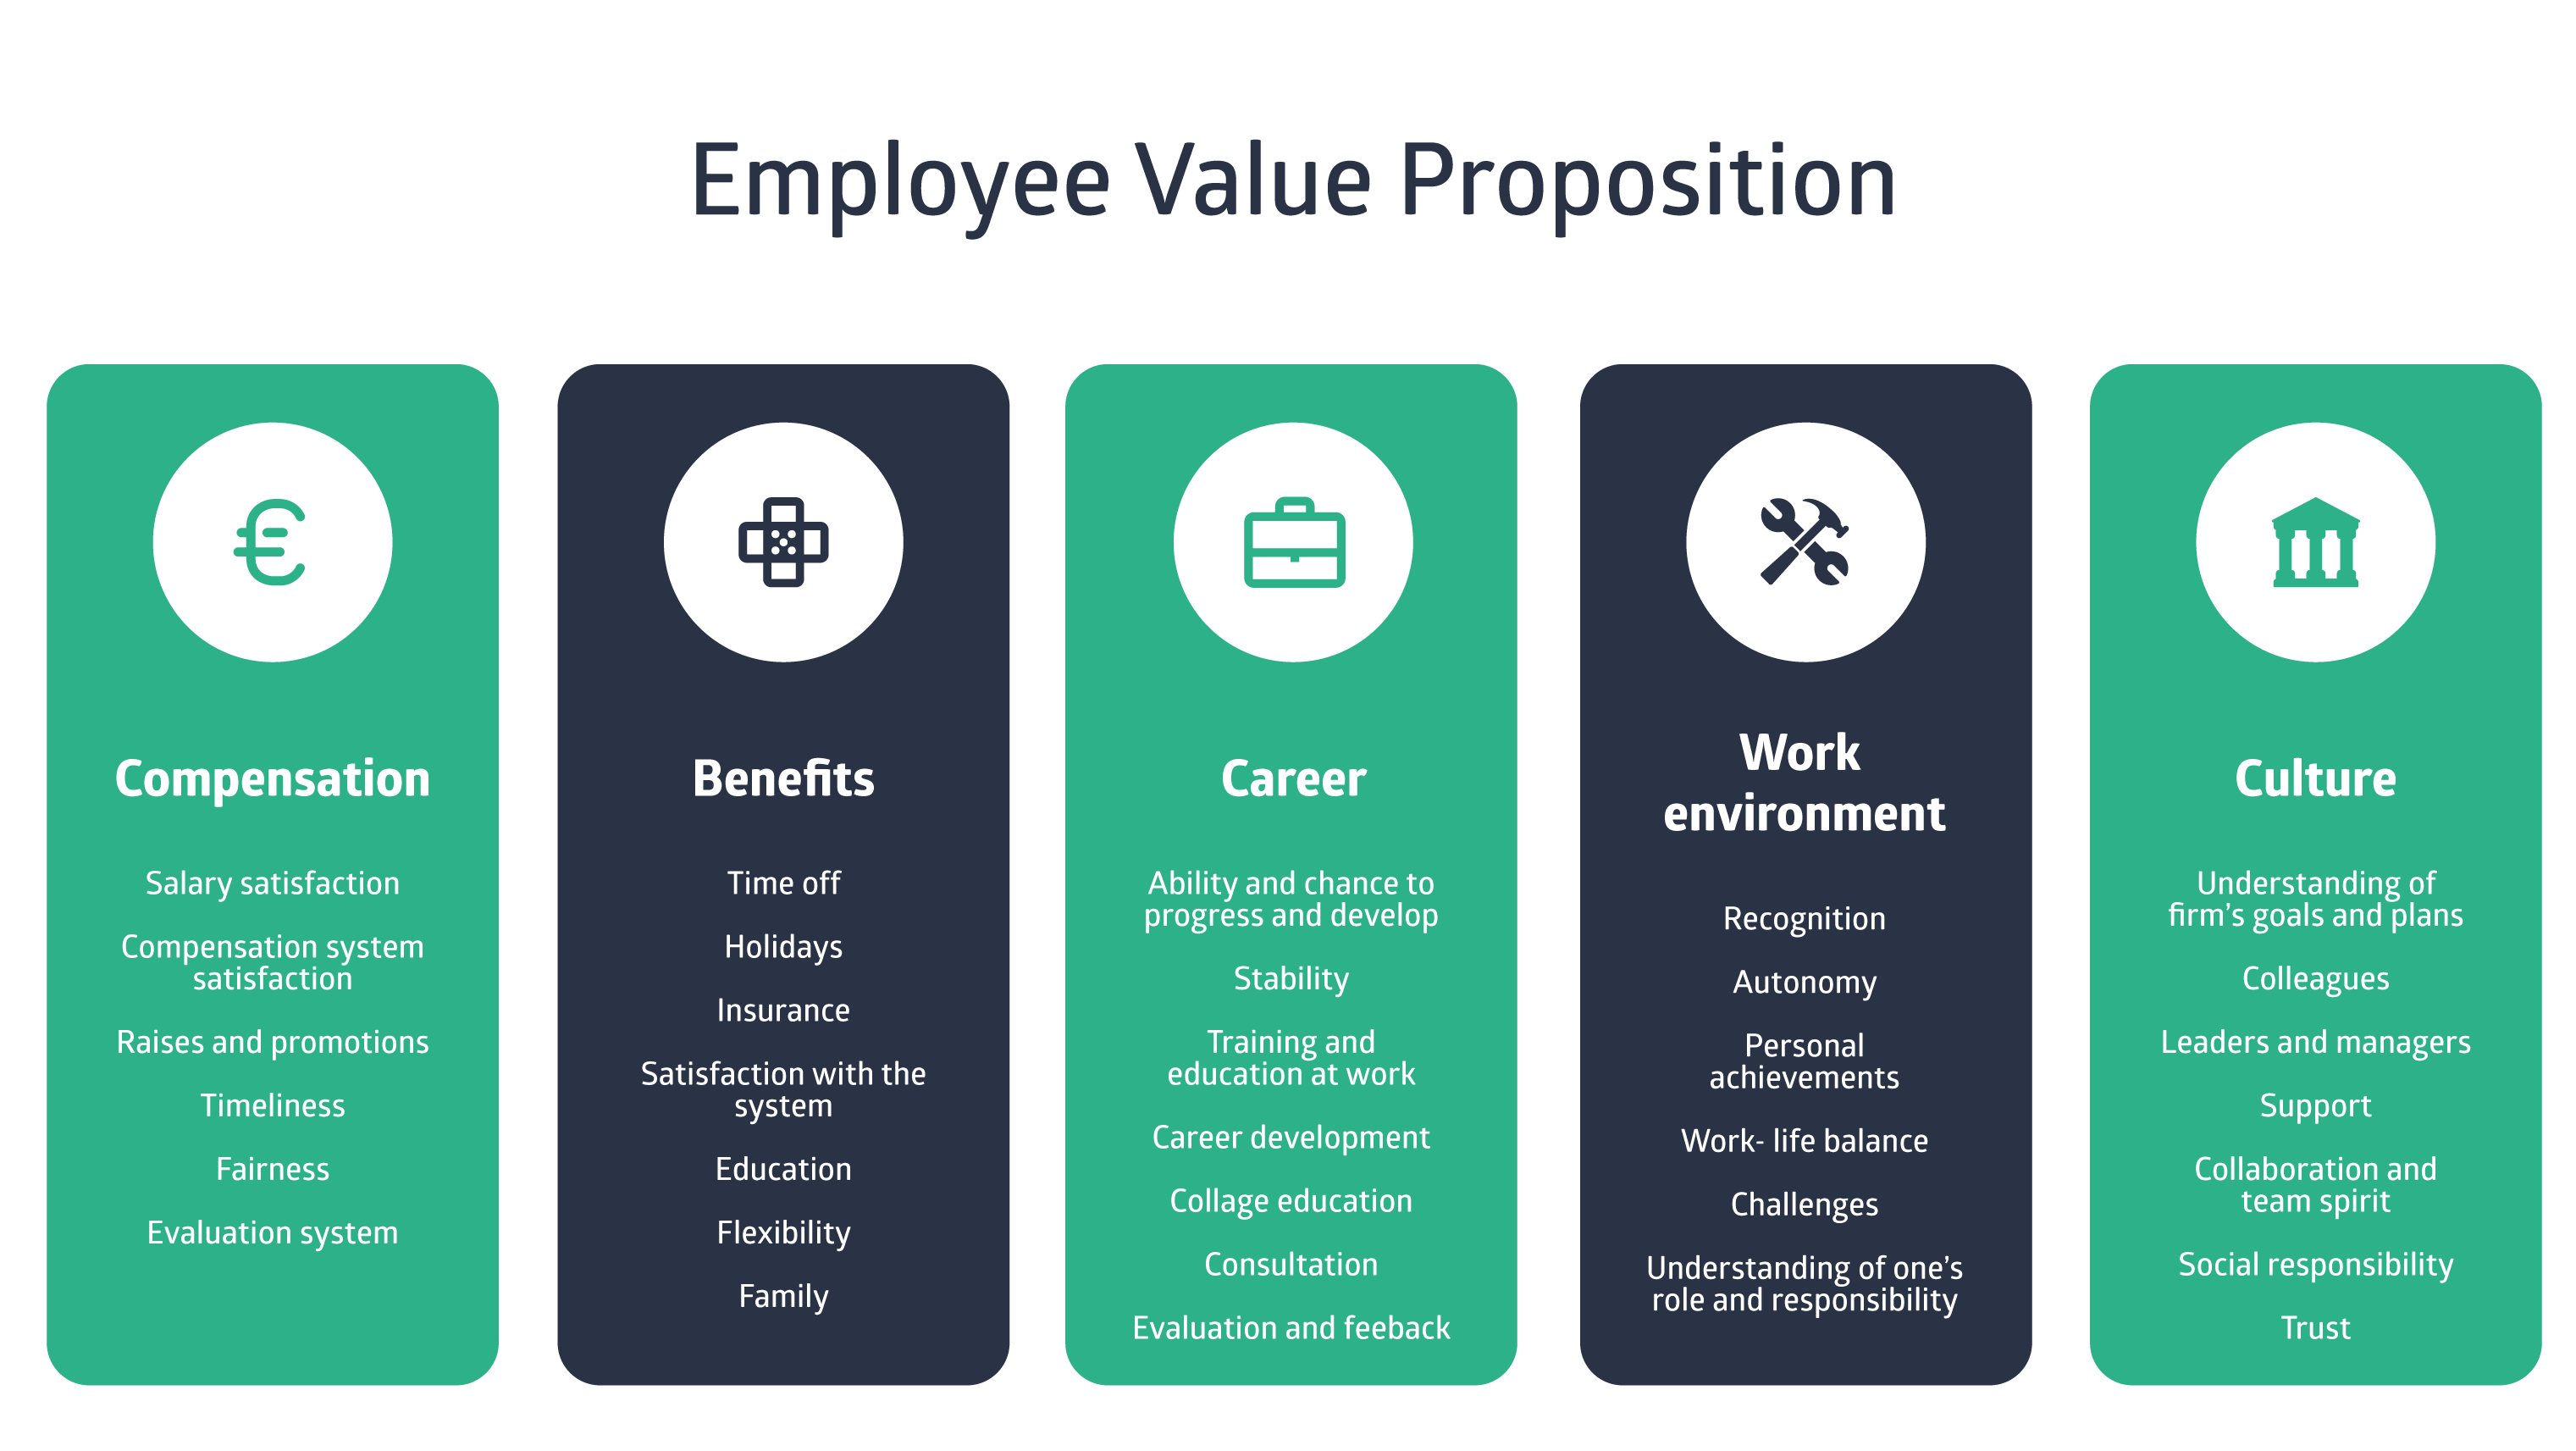 Employee Value Proposition_Tekengebied 1